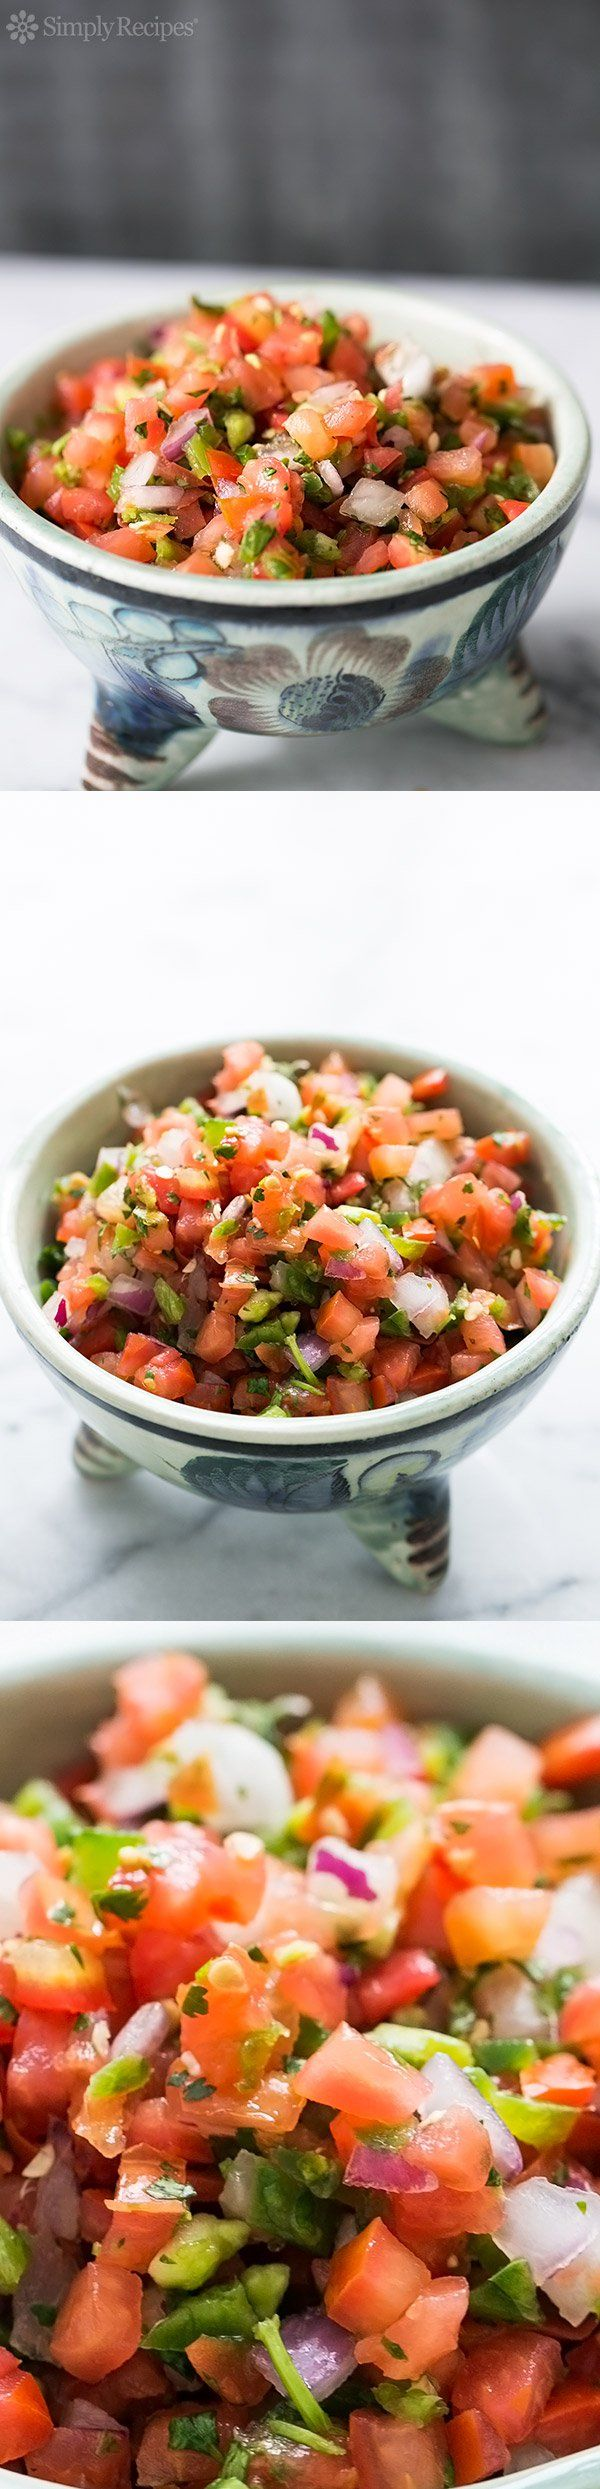 Fresh Tomato Salsa ~ Mexican salsa recipe made with chopped fresh tomatoes, jalapeno or serano chiles, red onion, cilantro, and lime.  Also called Pico de Gallo or Salsa Fresca. ~ SimplyRecipes.com